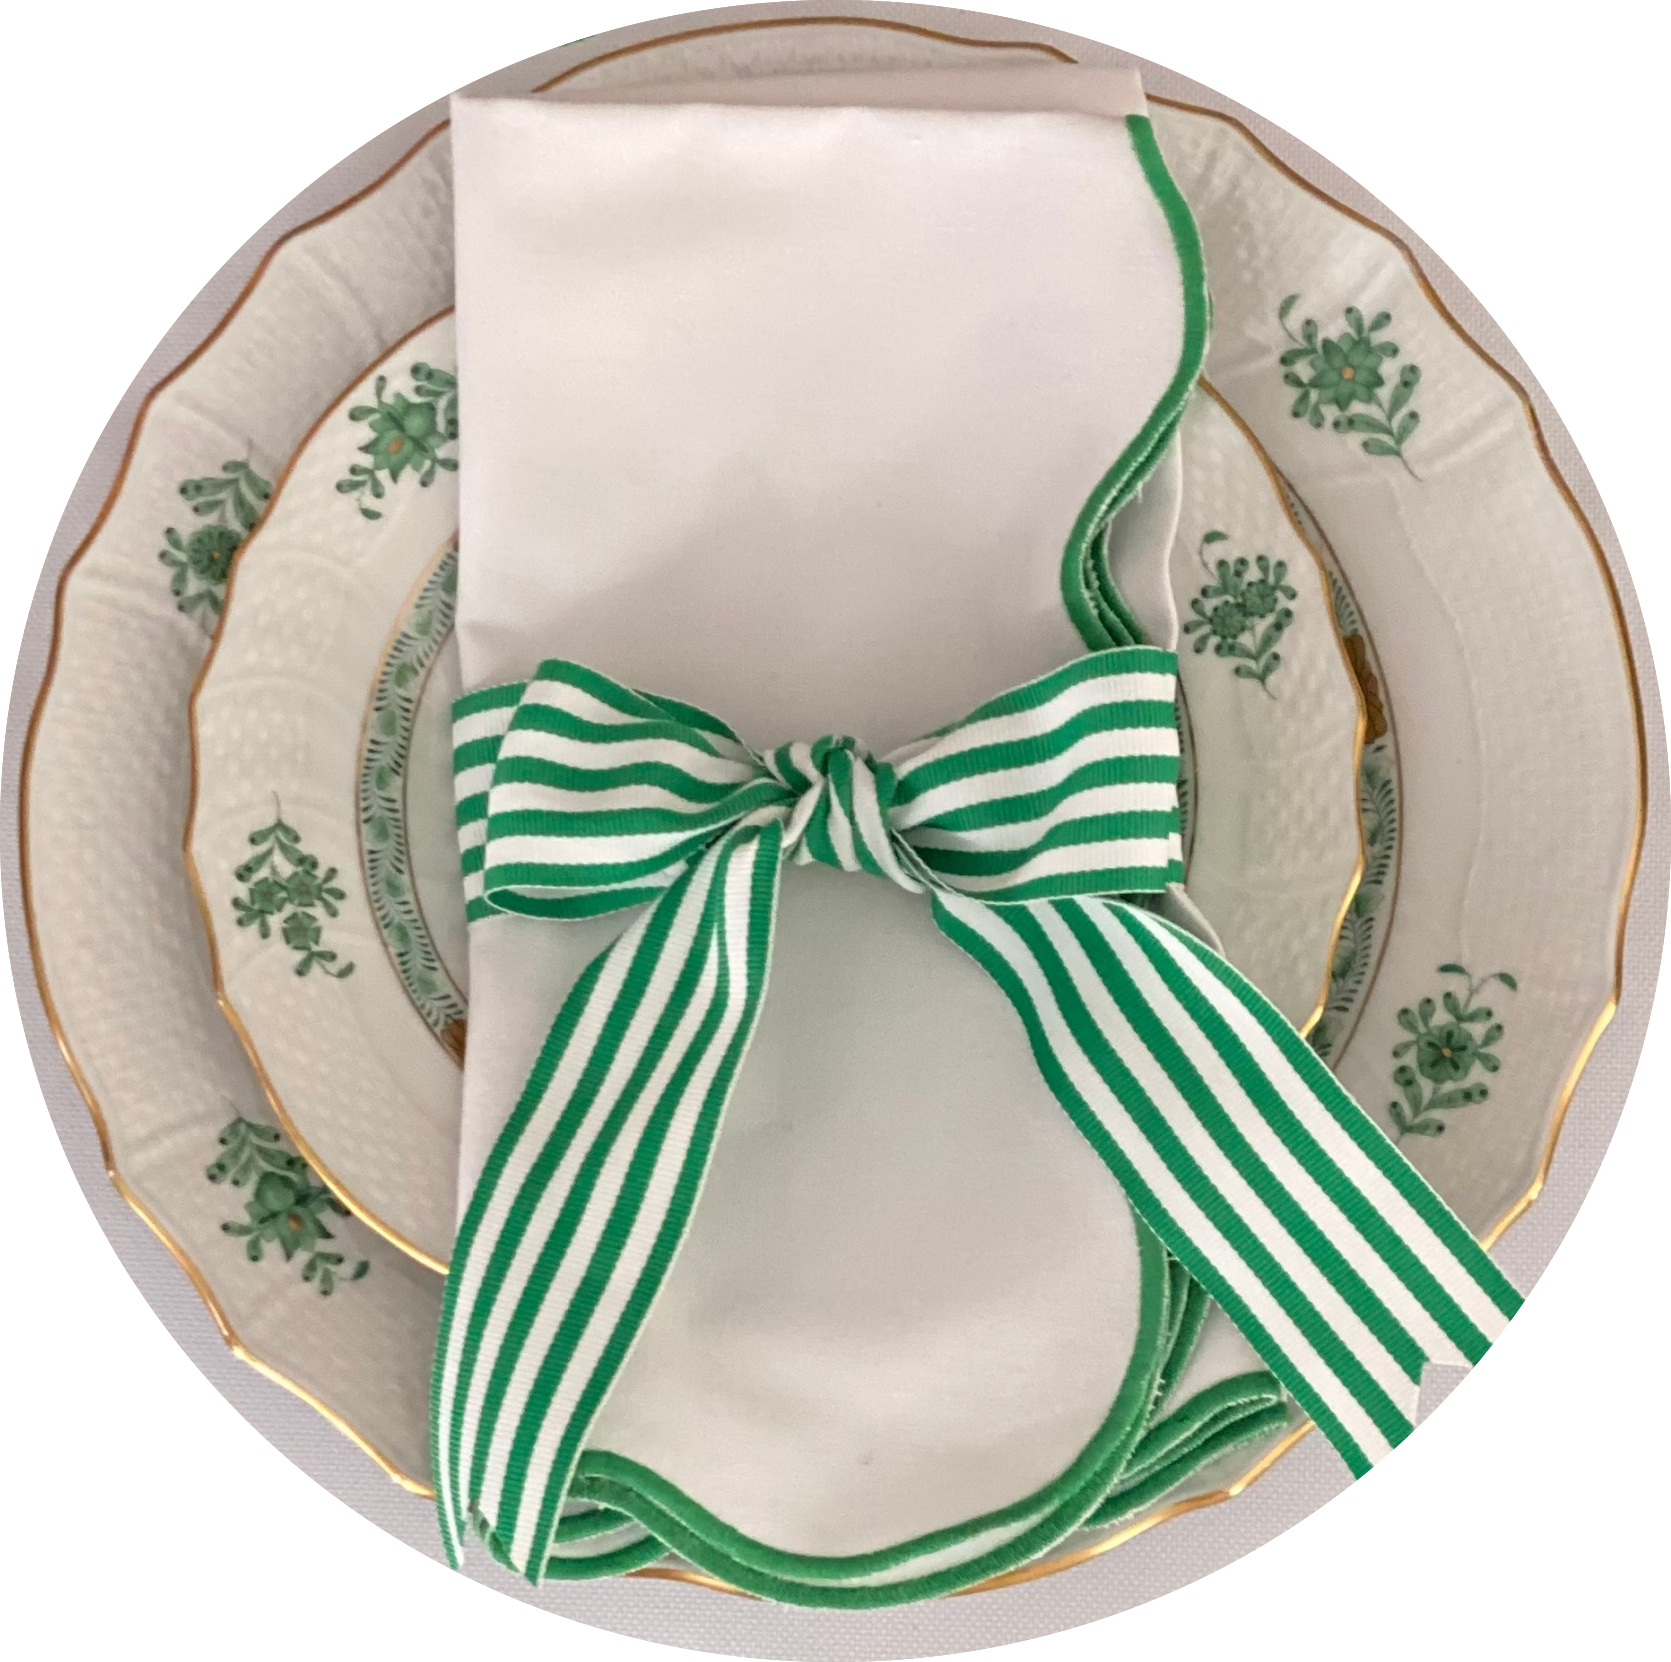 Set of White Napkins with Green Scalloped Edges